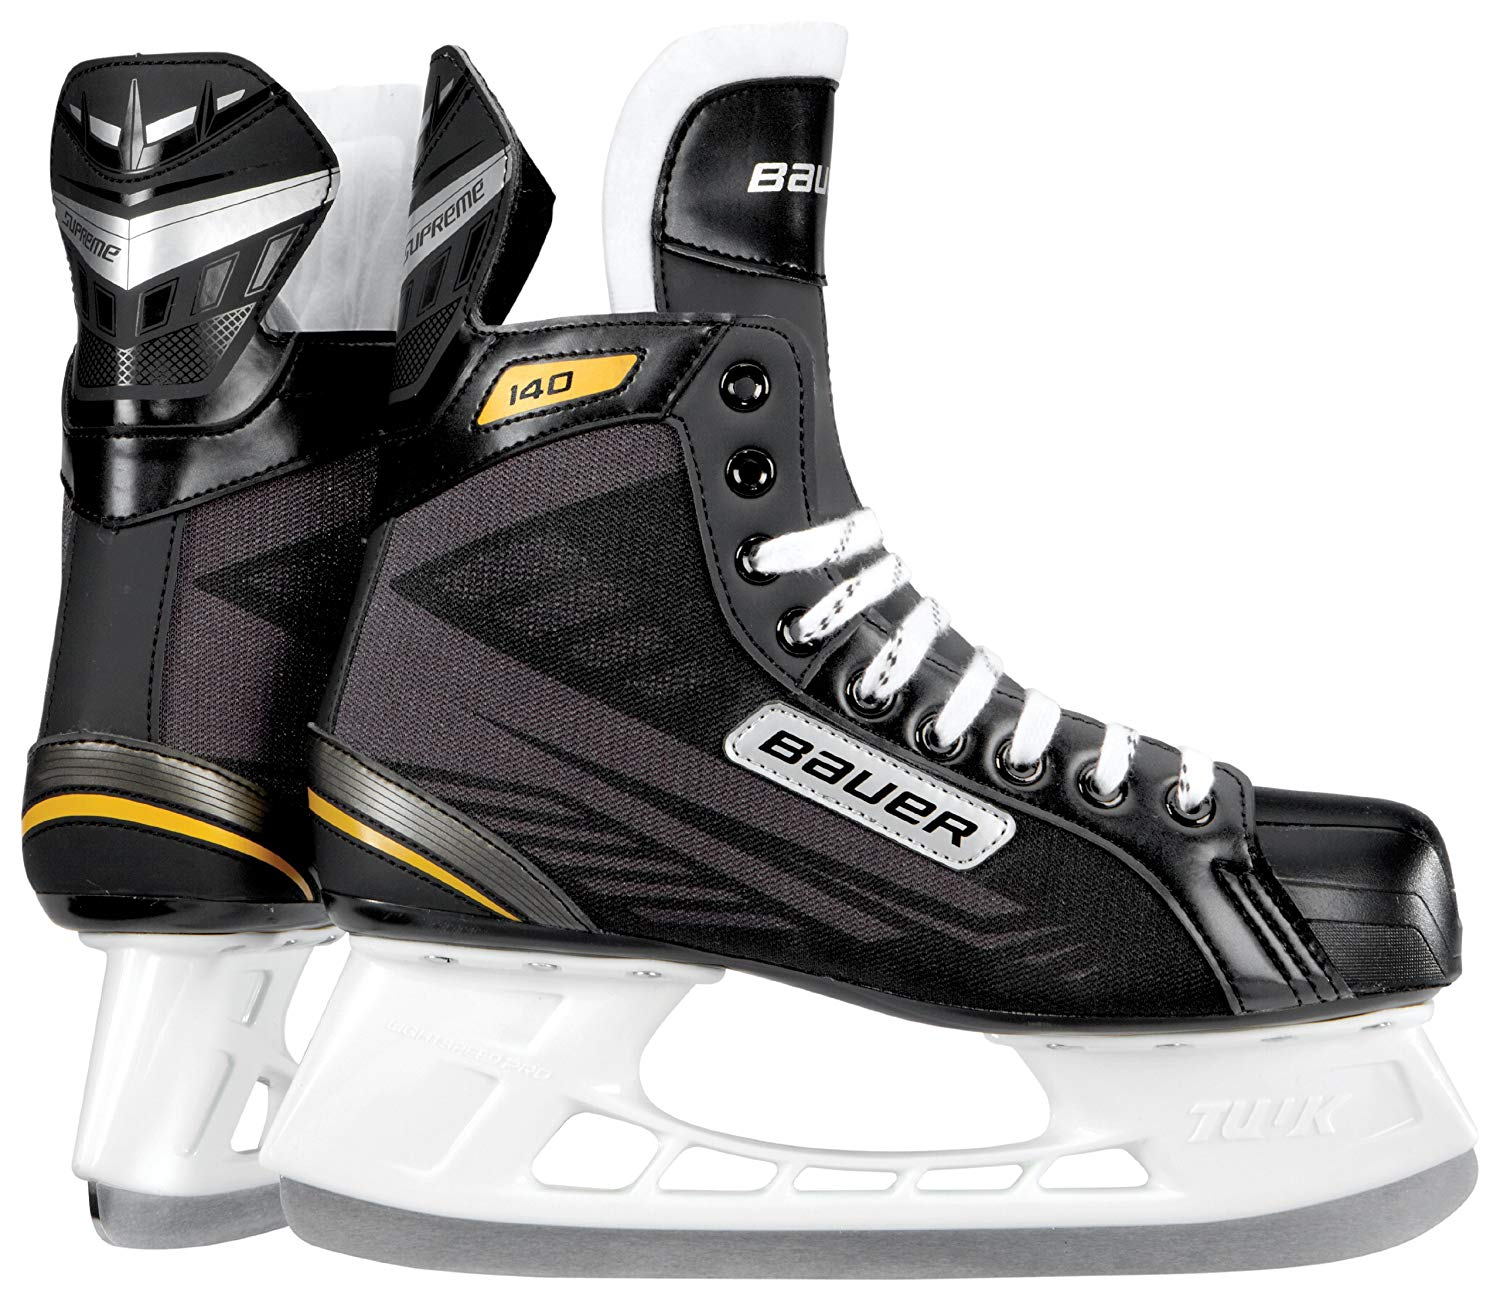 American Athletic Shoe Senior Cougar Soft Boot Hockey SkatesAmerican Athletic Shoe Senior Cougar Soft Boot Hockey Skates